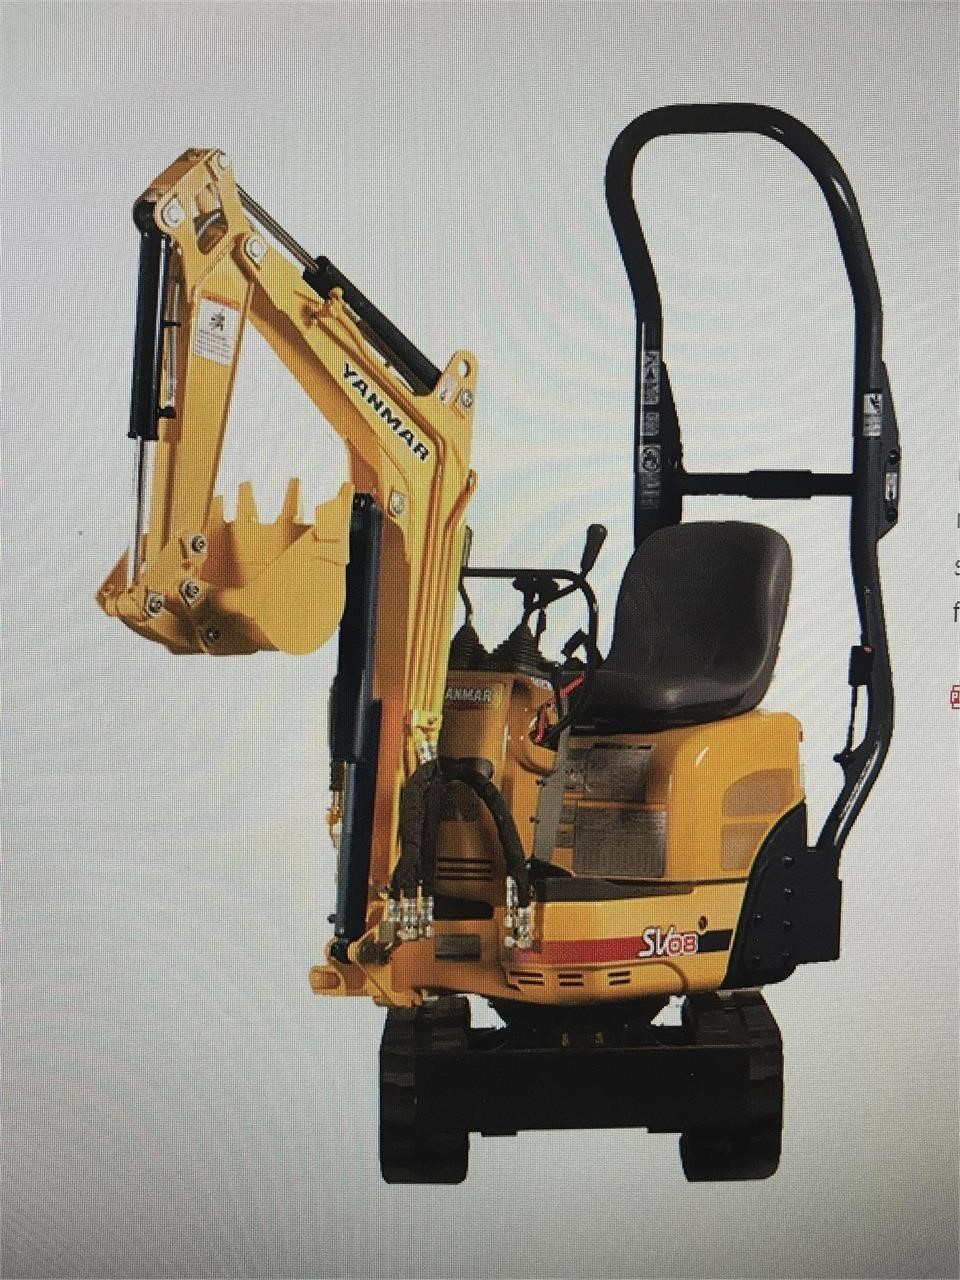 2020 Yanmar SV08-1A Excavators and Mini Excavator